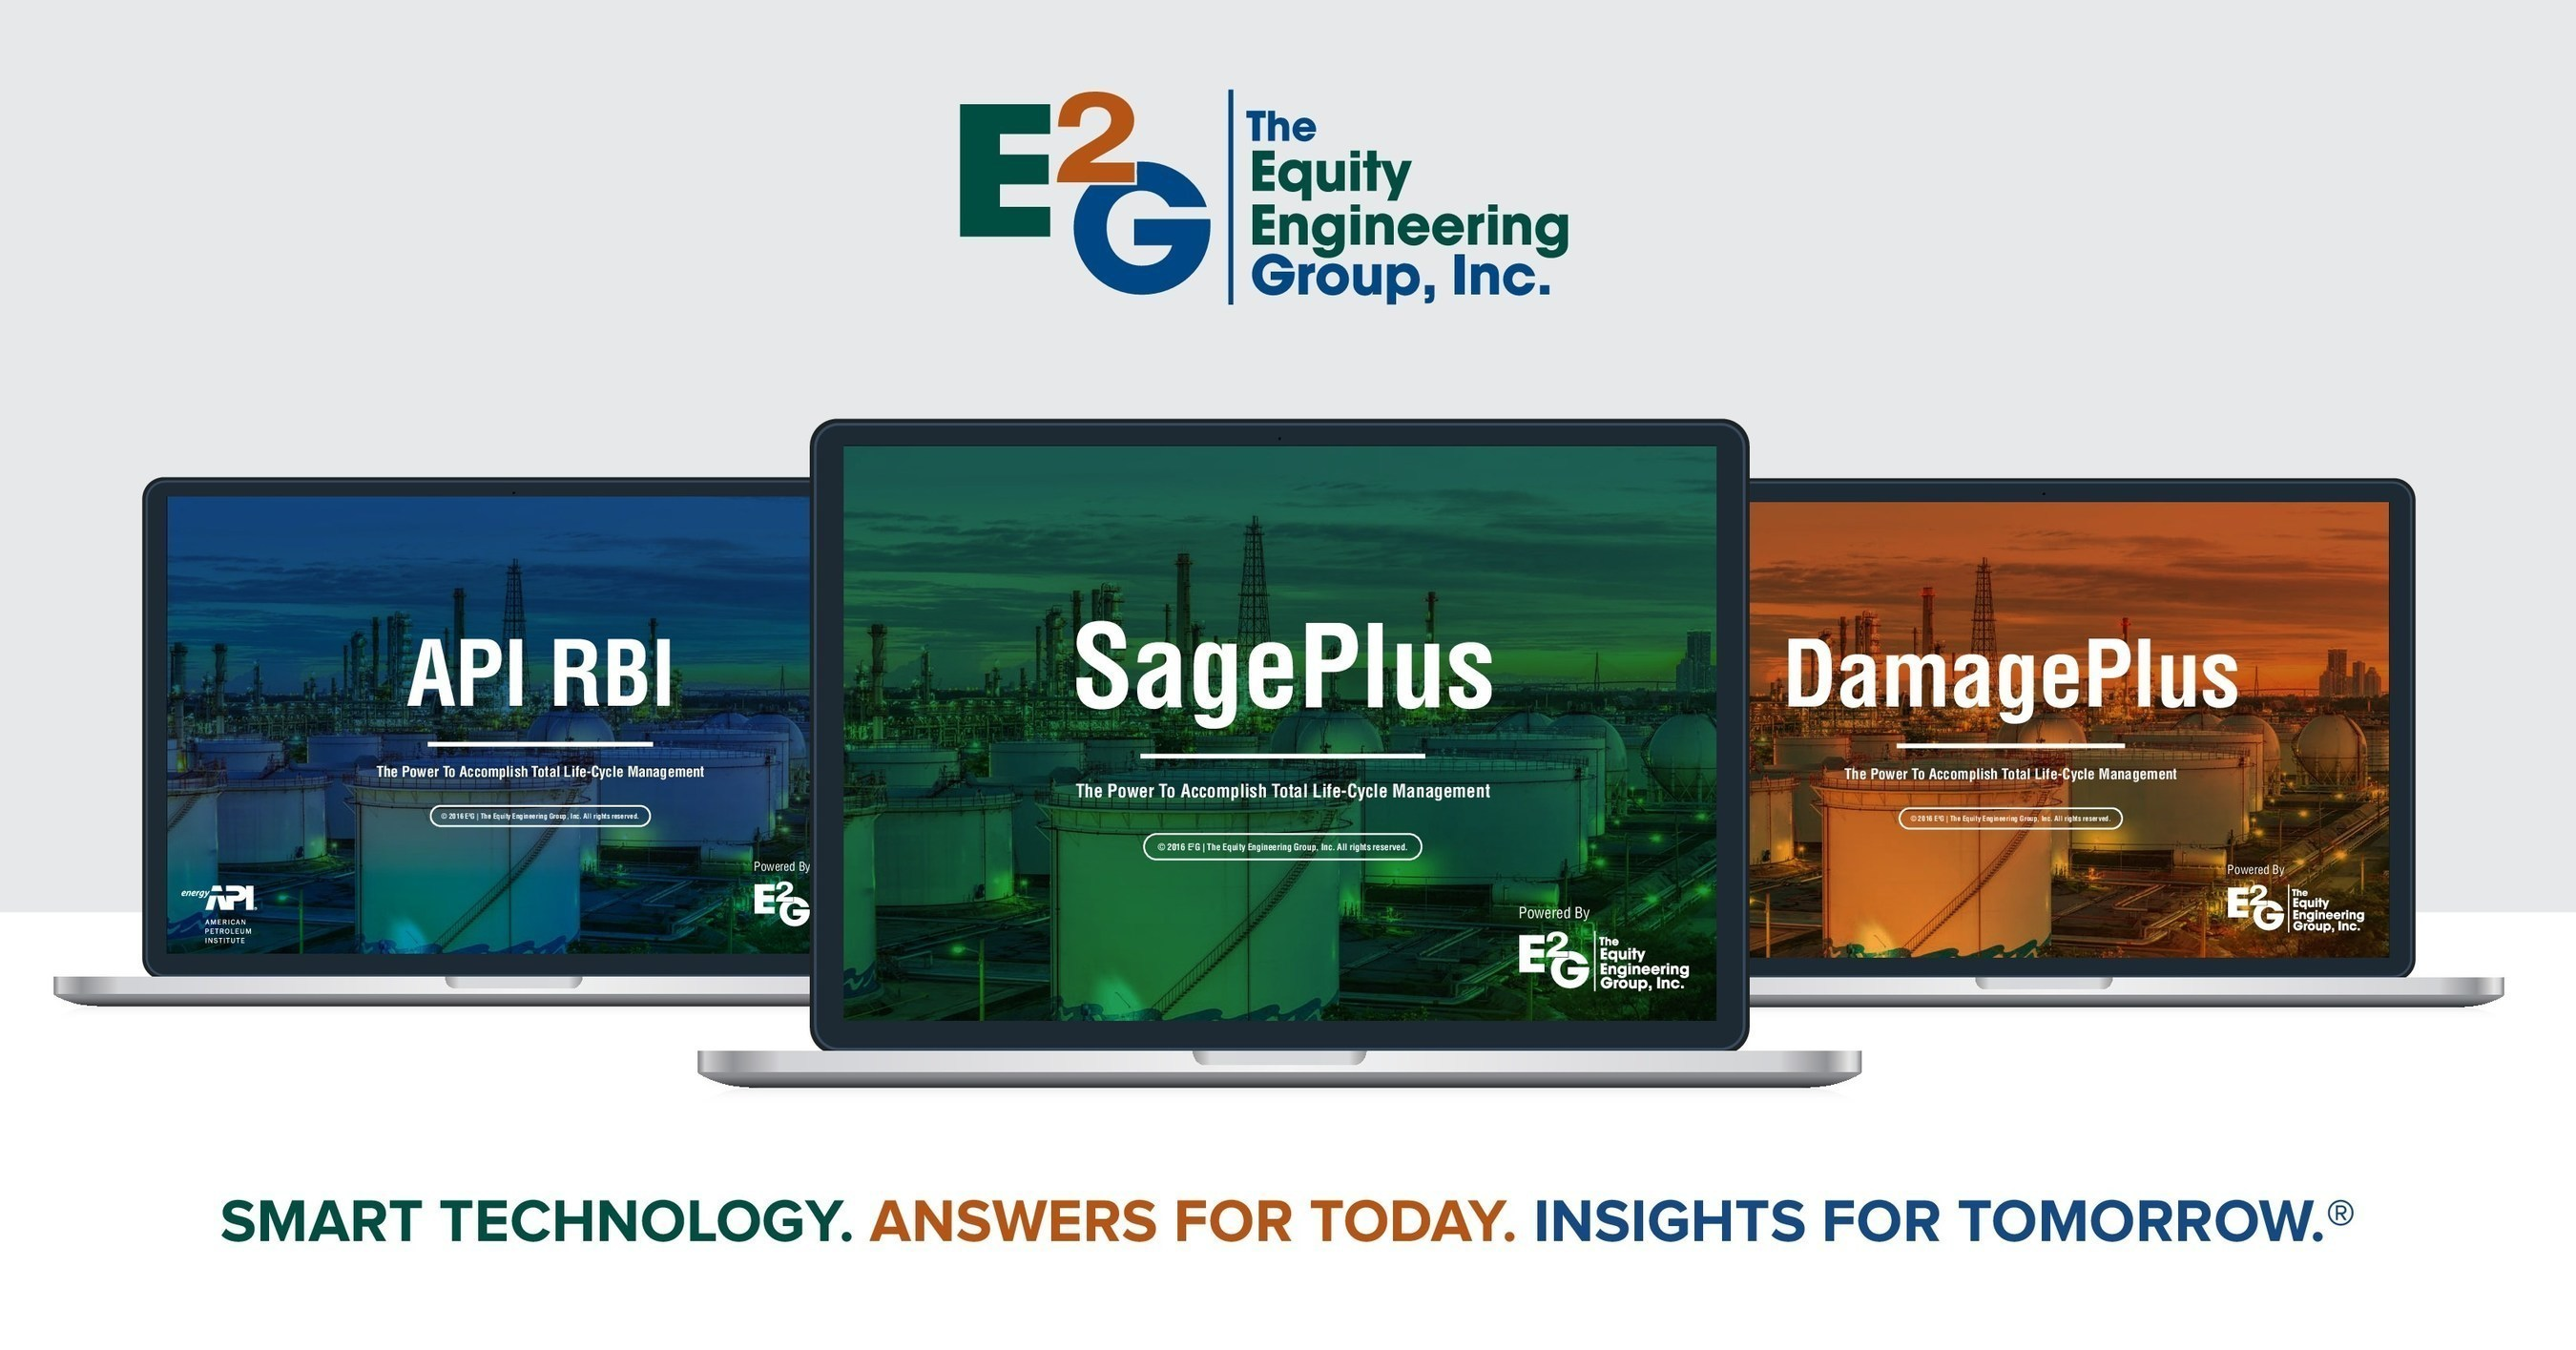 Software by E²G|The Equity Engineering Group, Inc. offers state-of-the-art tools to make the right decisions in keeping oil, refining and petrochemical plants safe and operating at top capacity. E²G's software was created by their industry-leading engineers. E²G experts are dedicated to advancing the technology, serving as leaders in industry committees and continually improving the software with the latest committee approved changes often before they have been published.